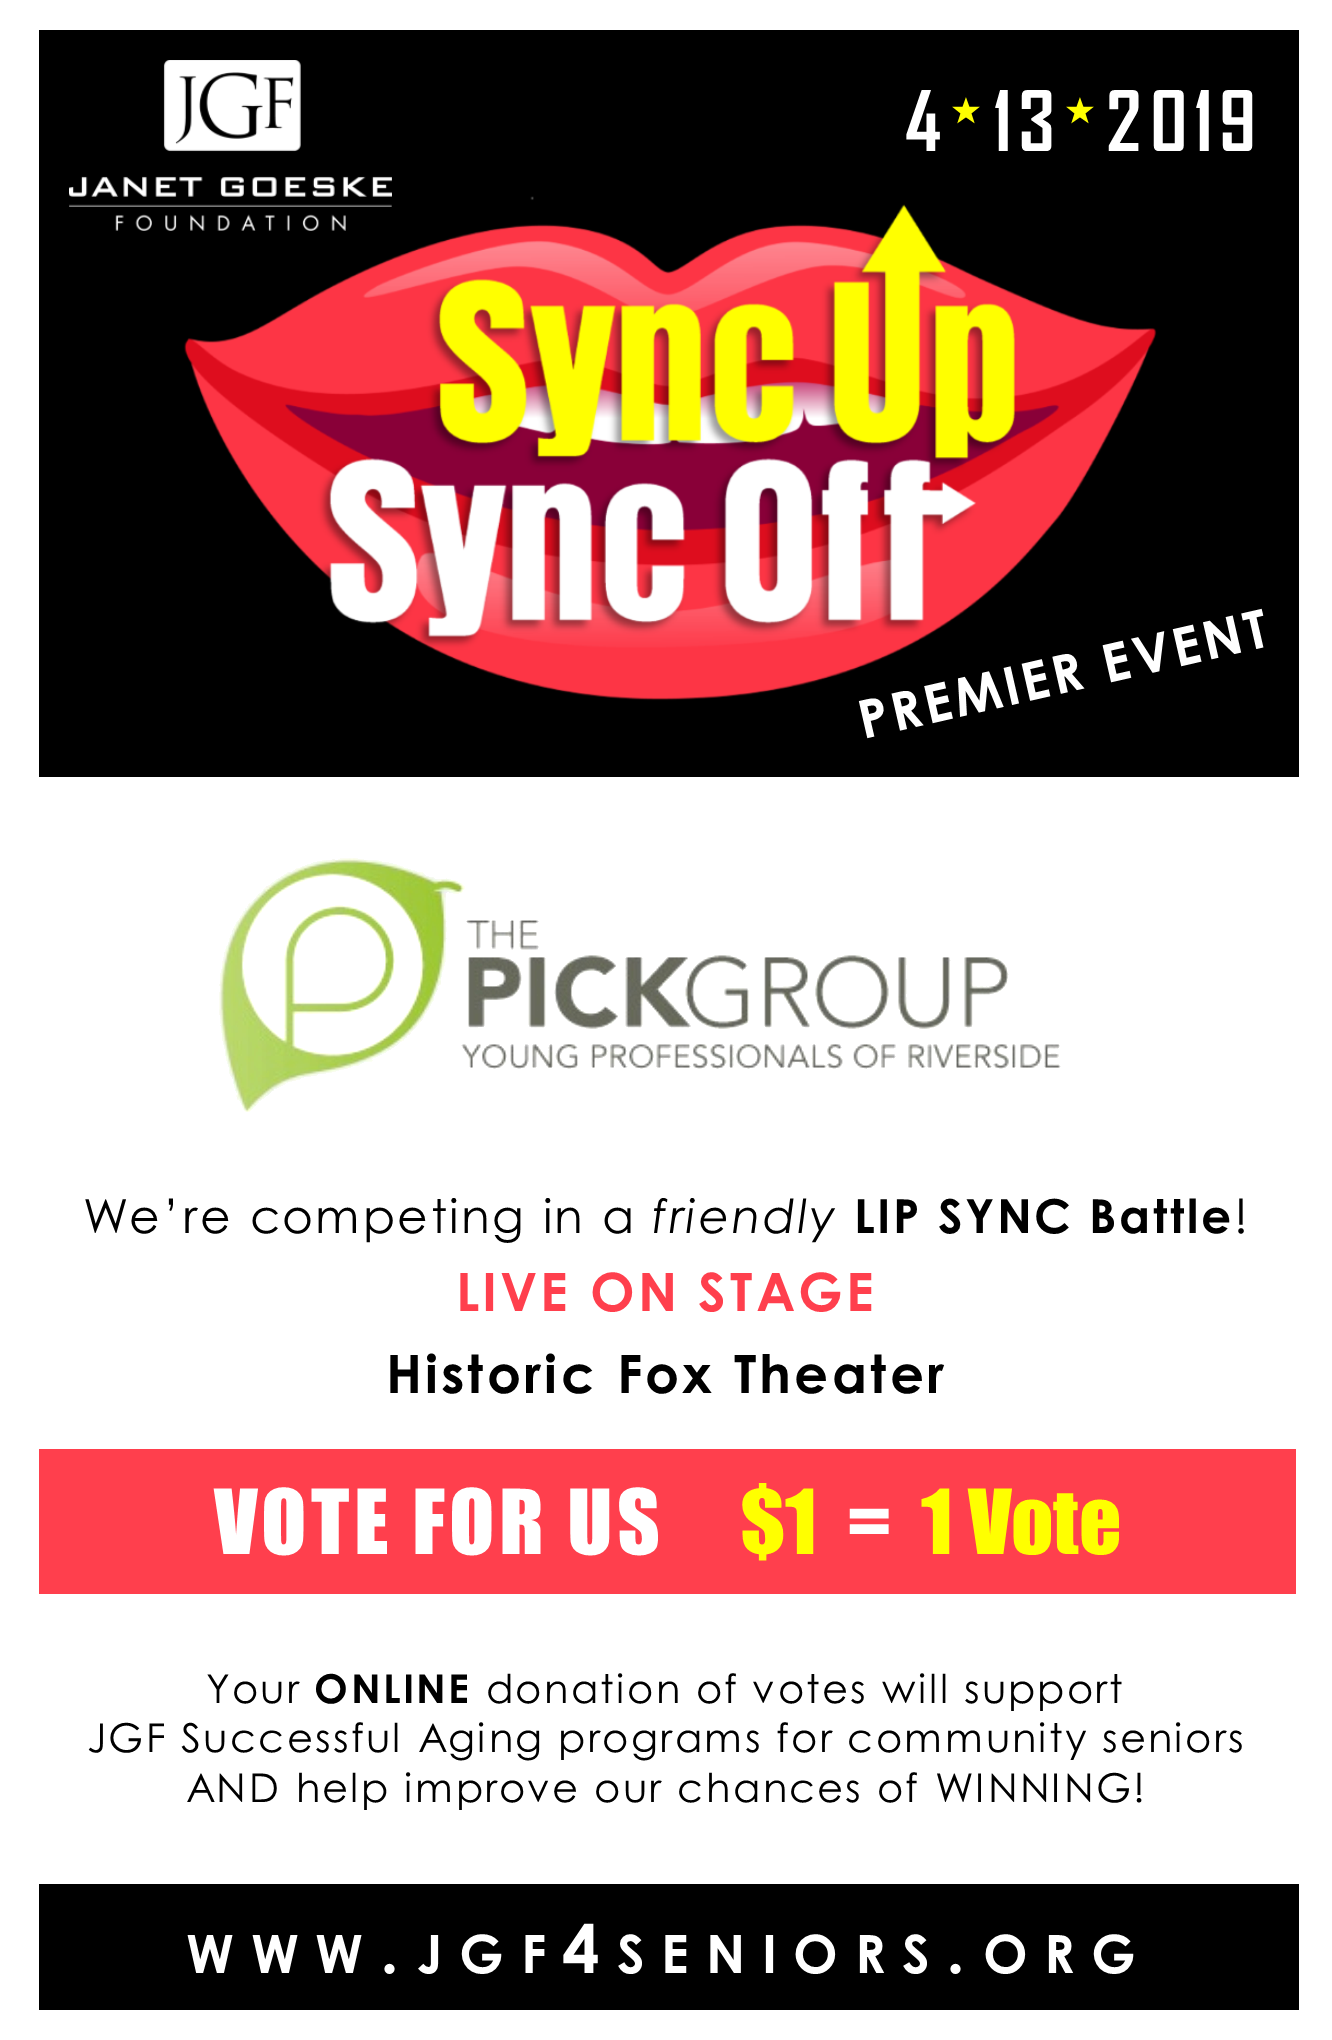 Pick Group - Vote for Us Postcard - SYNC Up 2019.png